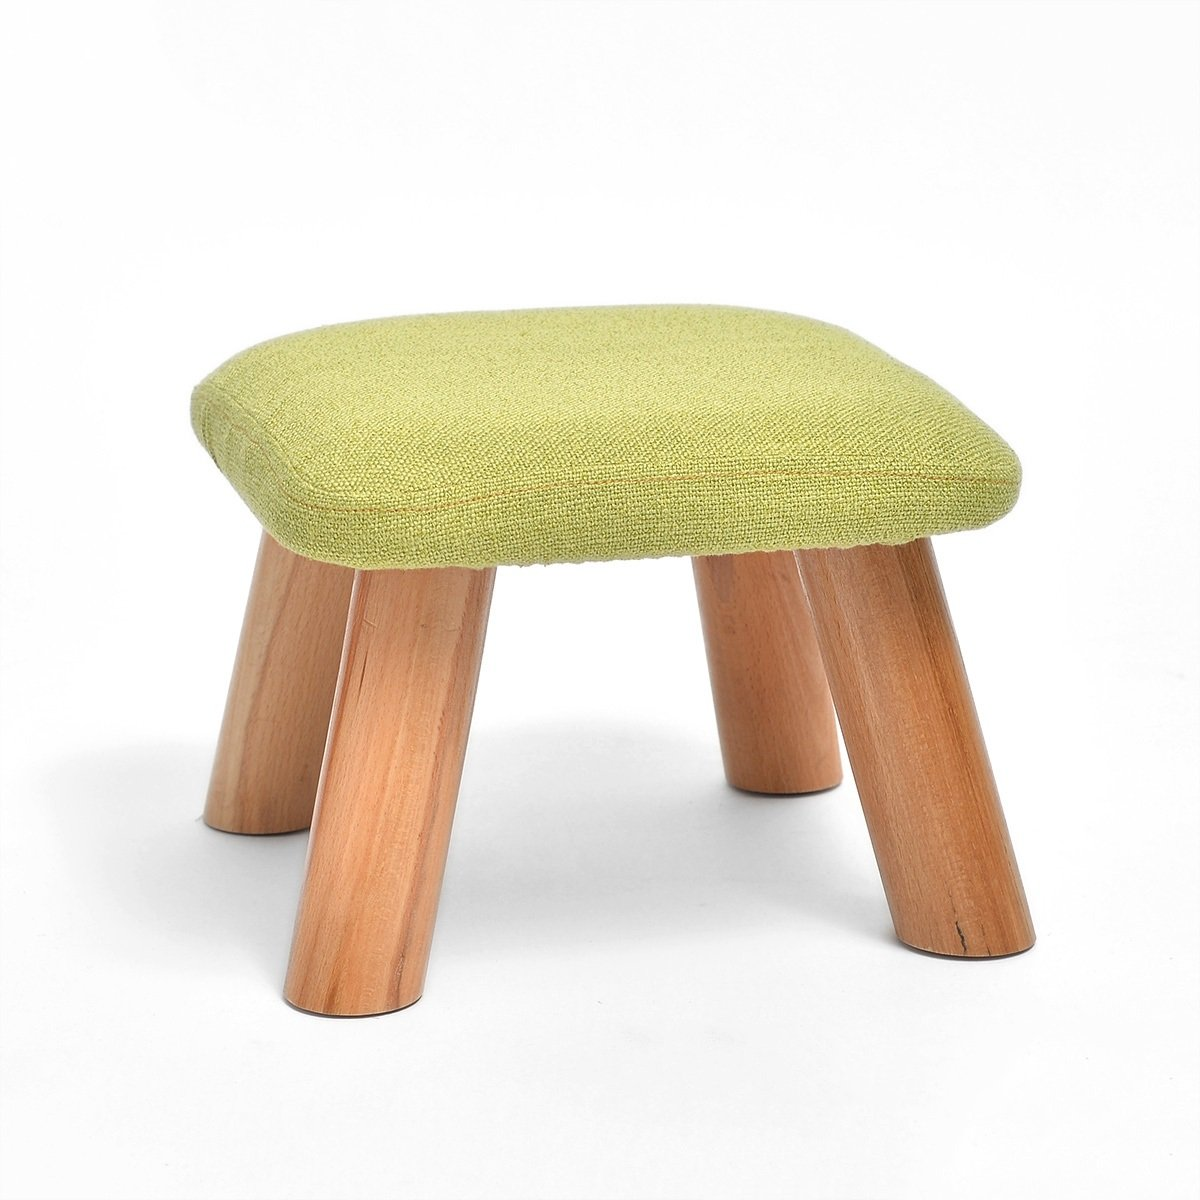 TLMY Fashion Creative Shoes Bench Solid Wood Coffee Table Stool Stool Stool Fabric Bench Children Sofa Bench Footstool Stool Chair (Color : Matcha)